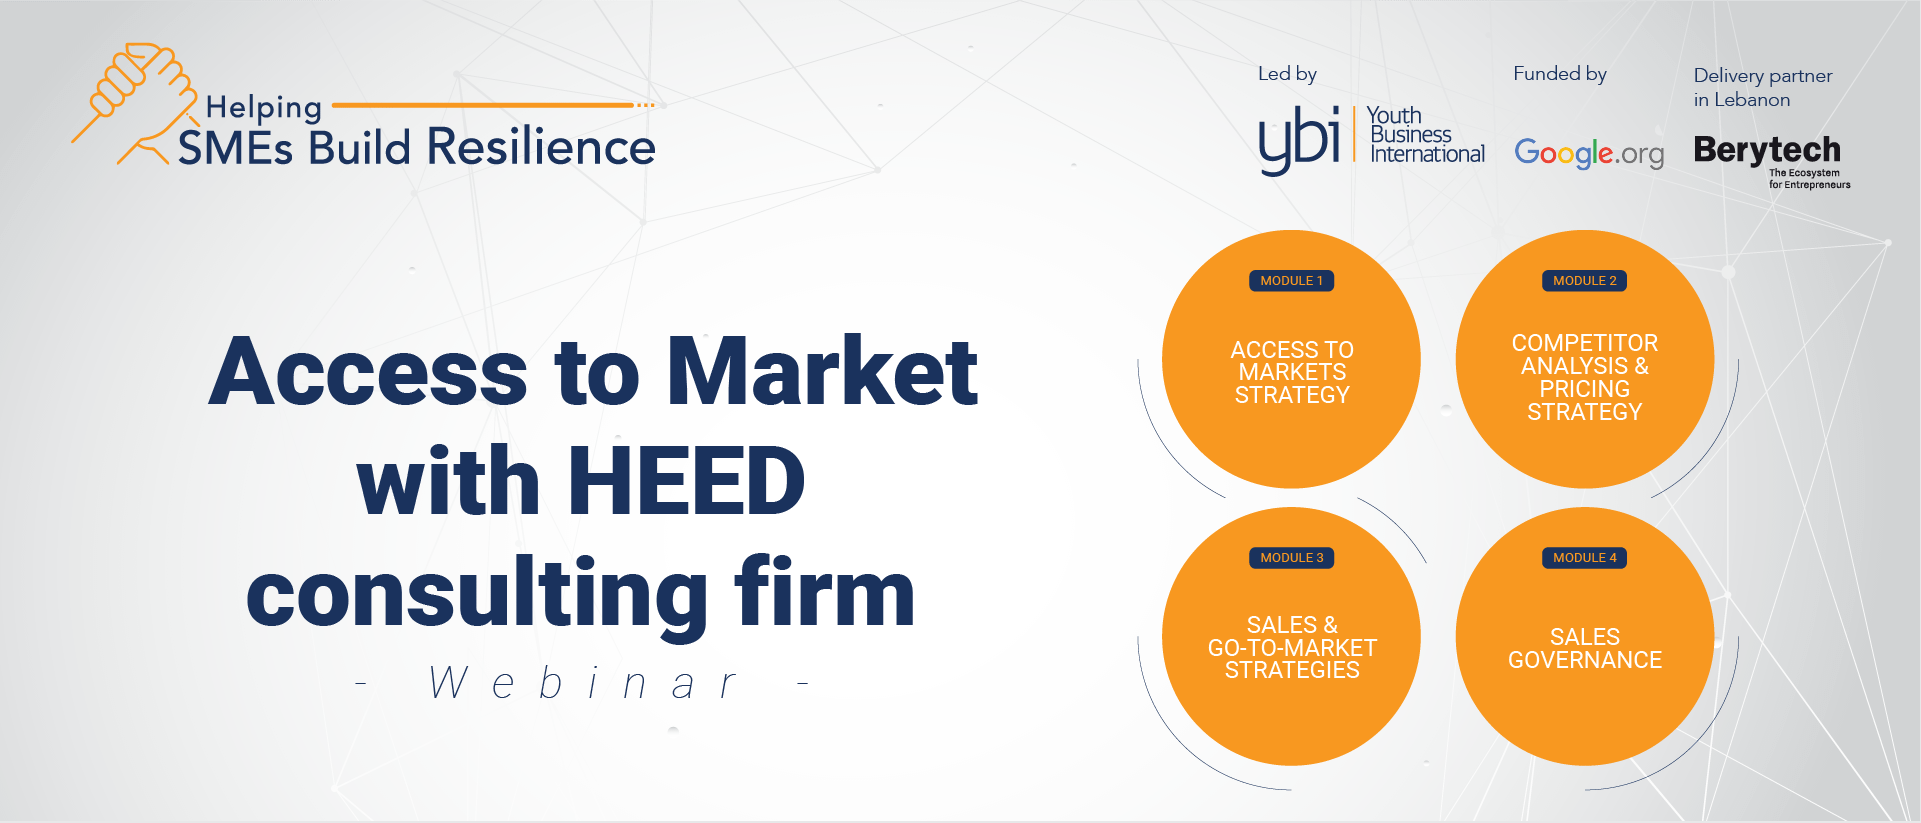 Access to Market with HEED consulting firm-1920x822